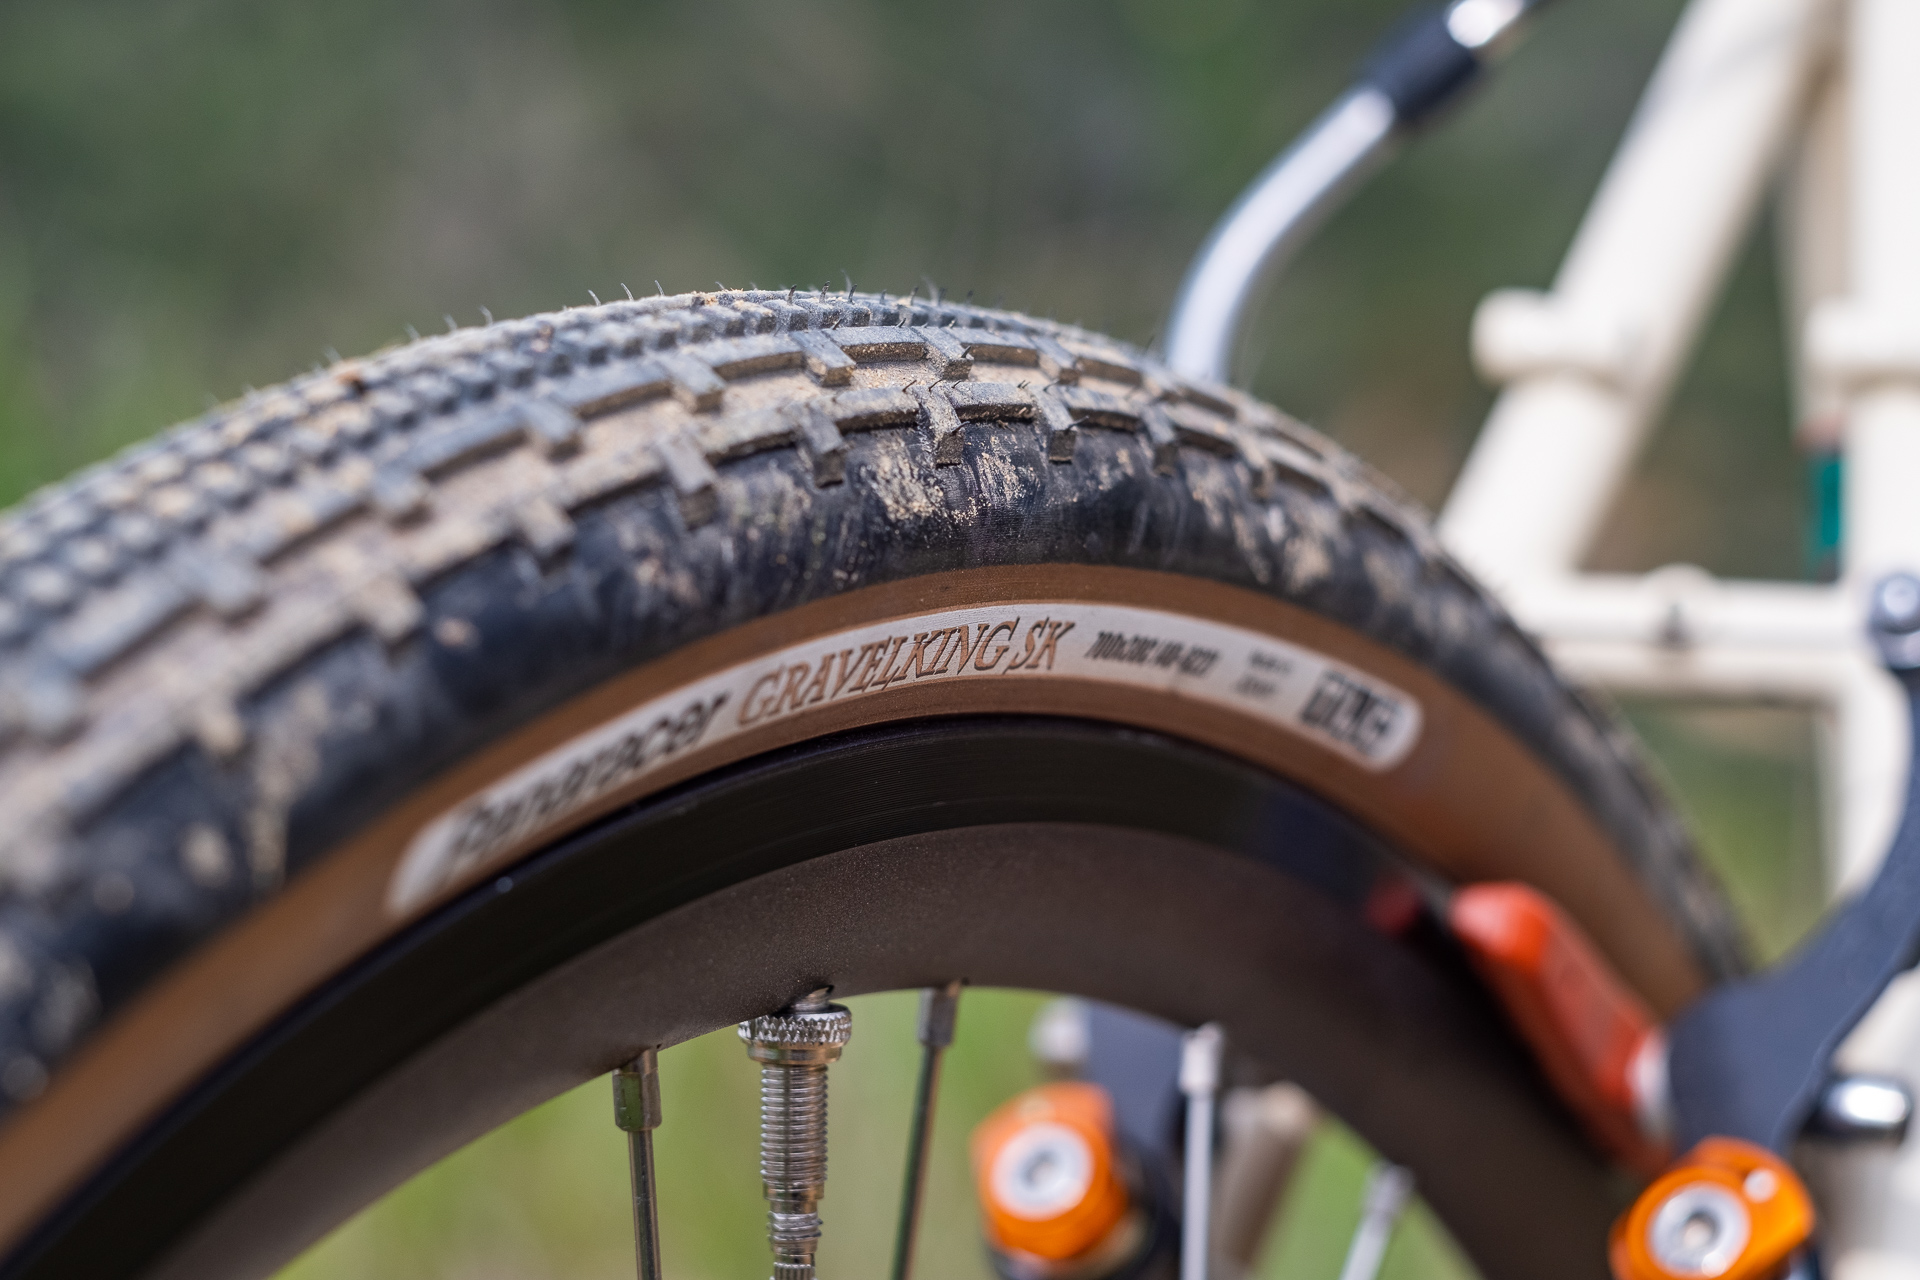 Surly Travelers Gravelers Check Panaracer Tire detail.